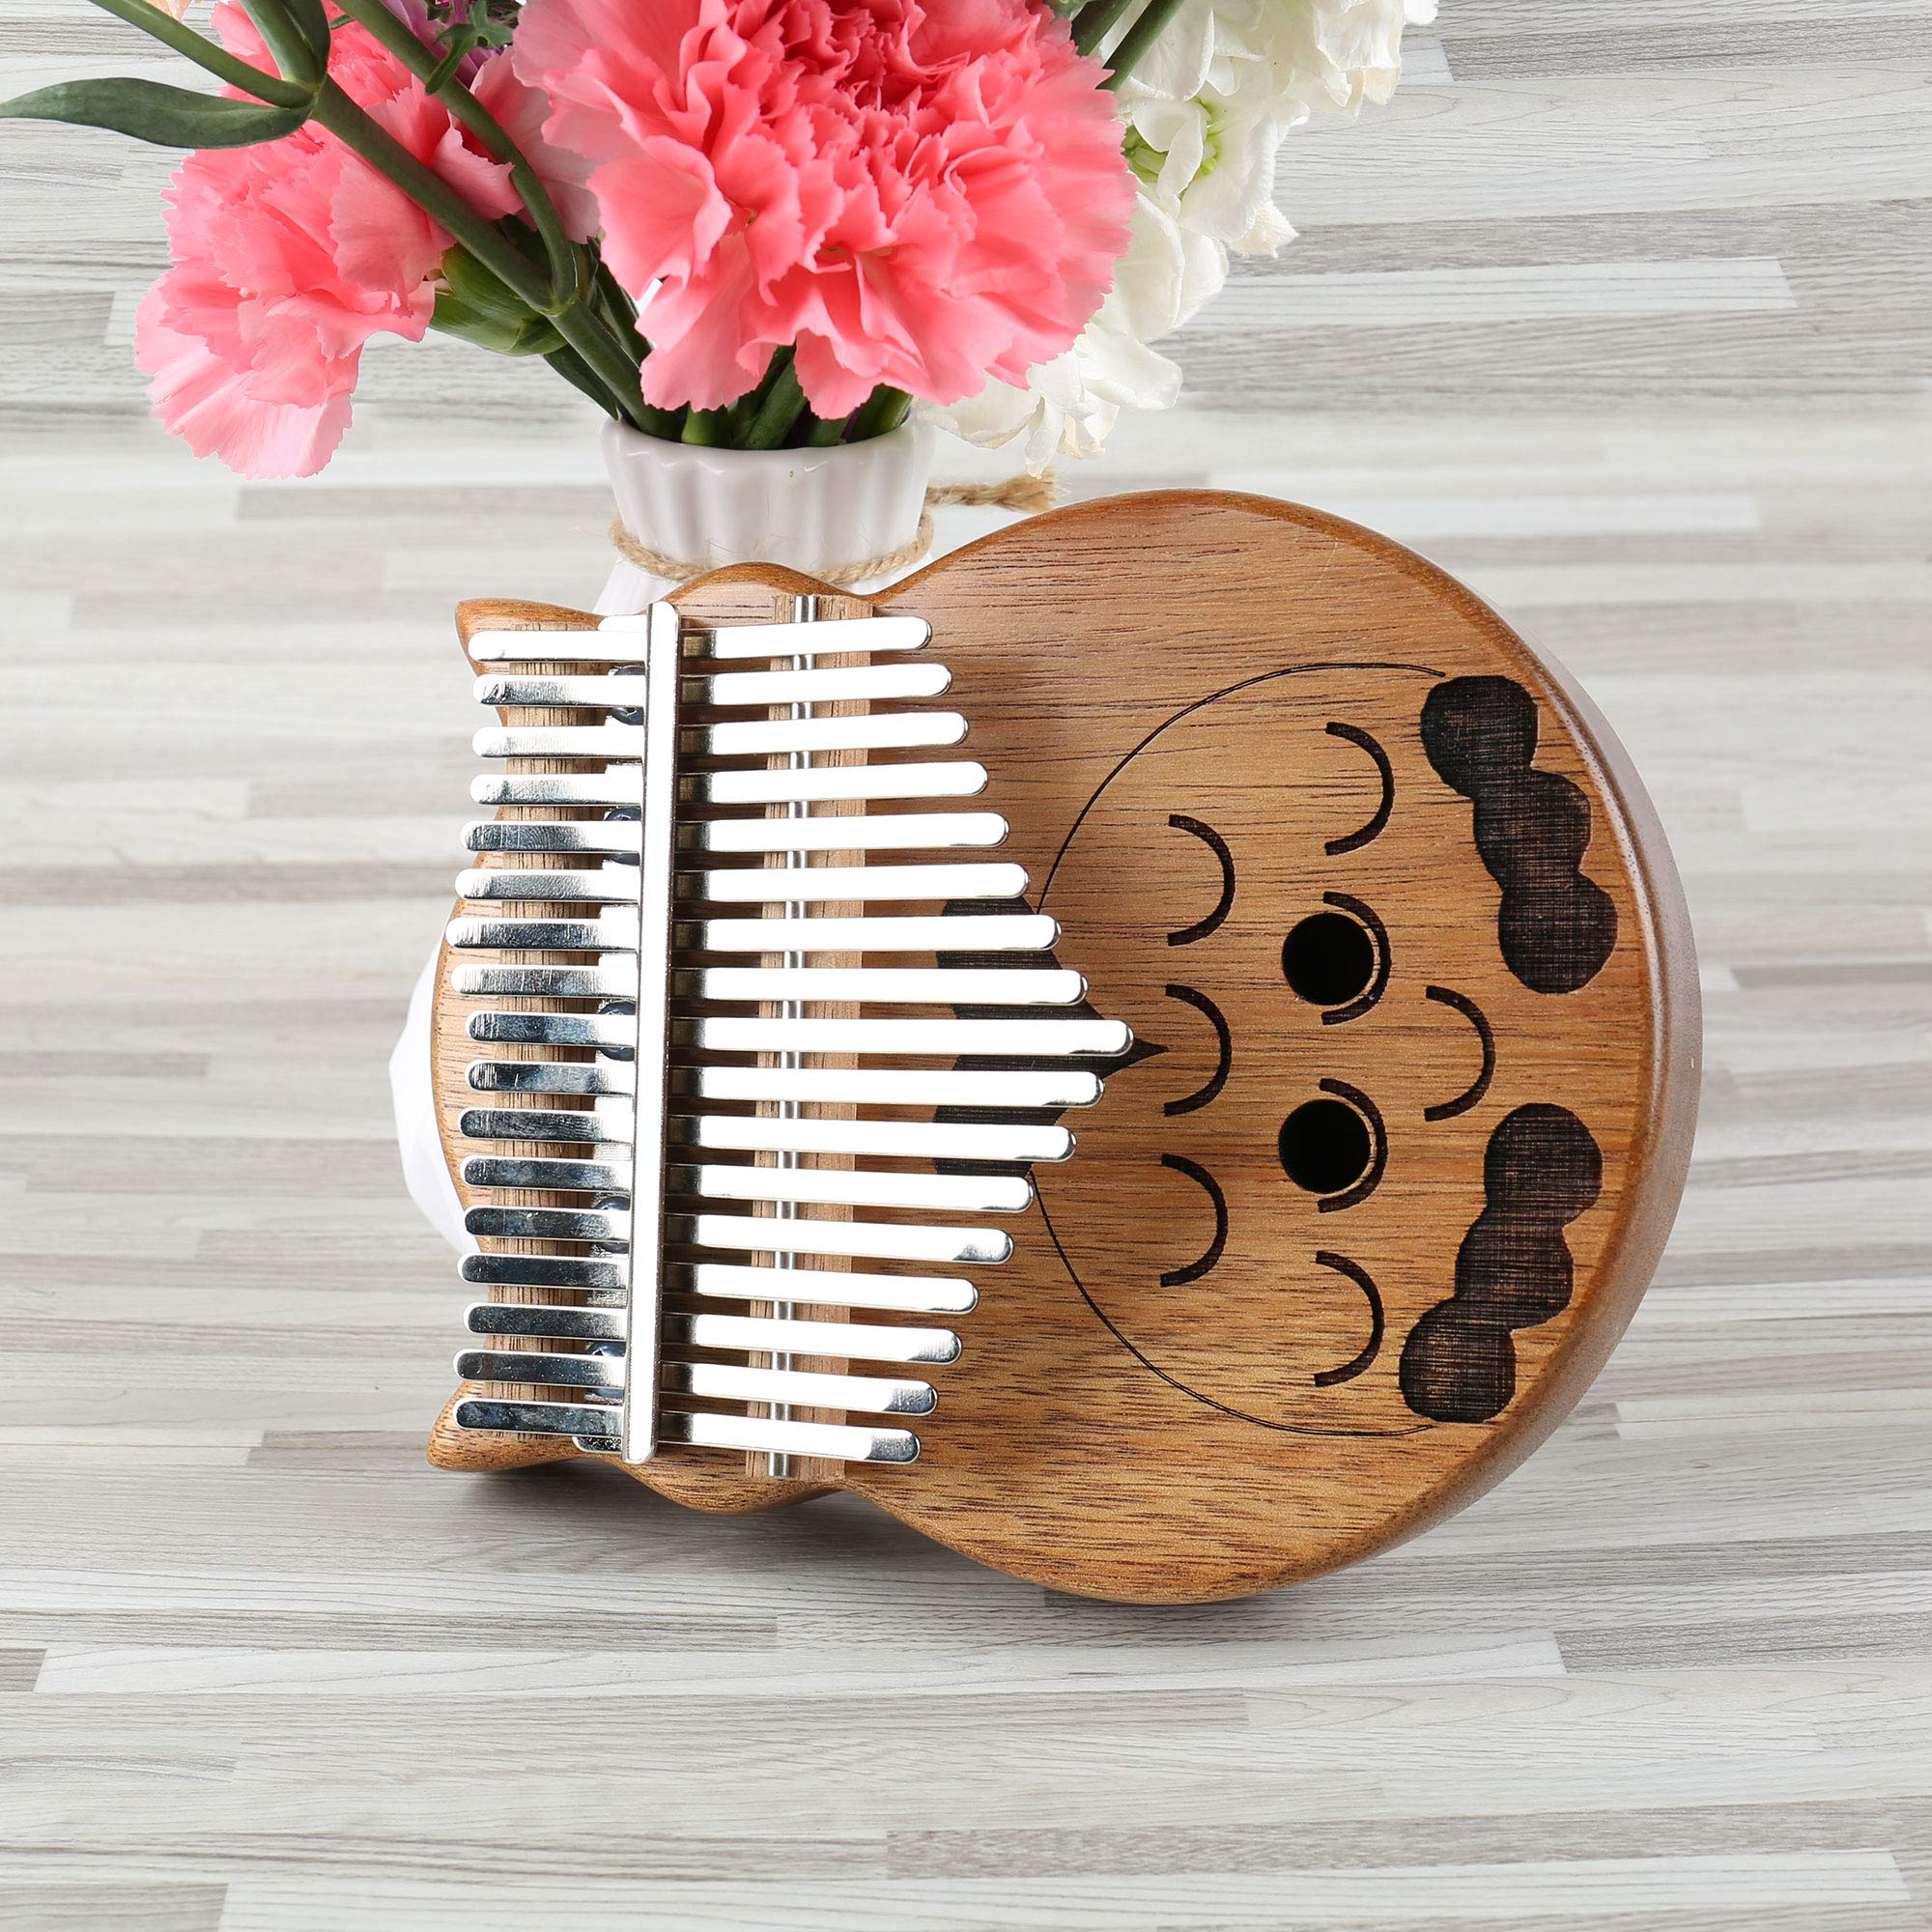 longdafeiUS Kalimba, Owl ThumbPianowith 17 Key Finger Piano Mbira Solid Walnut Wood Thumb Piano Finger Percussion Musical Gift by longdafeiUS (Image #5)